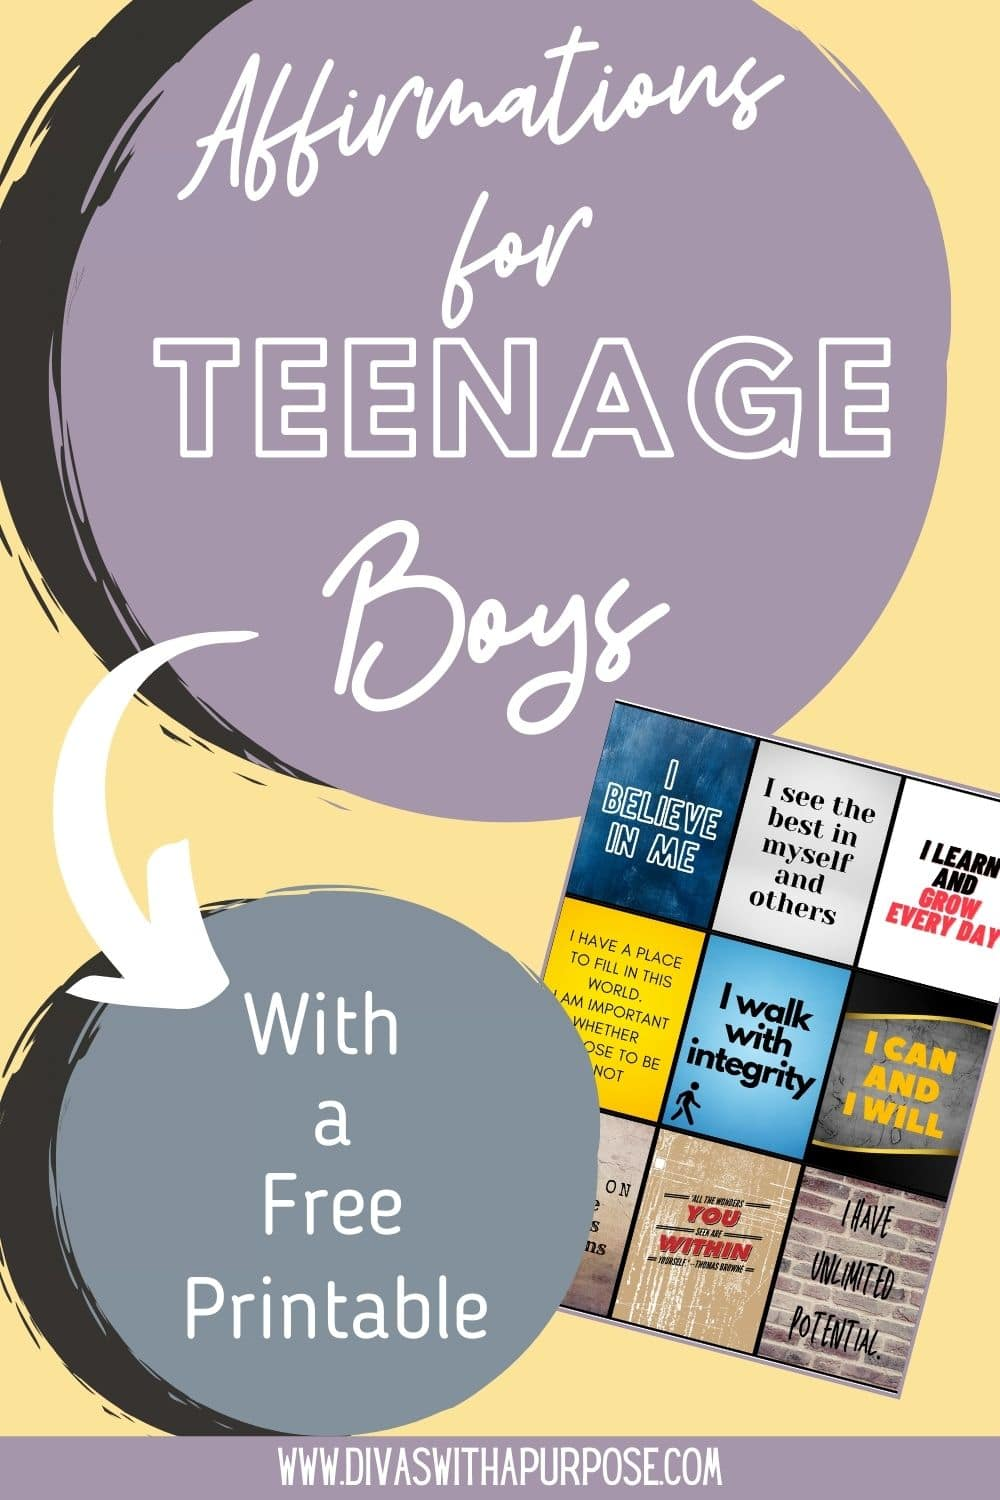 This article shares simple affirmations for our teenage sons that will help instill confidence and positive self-talk.